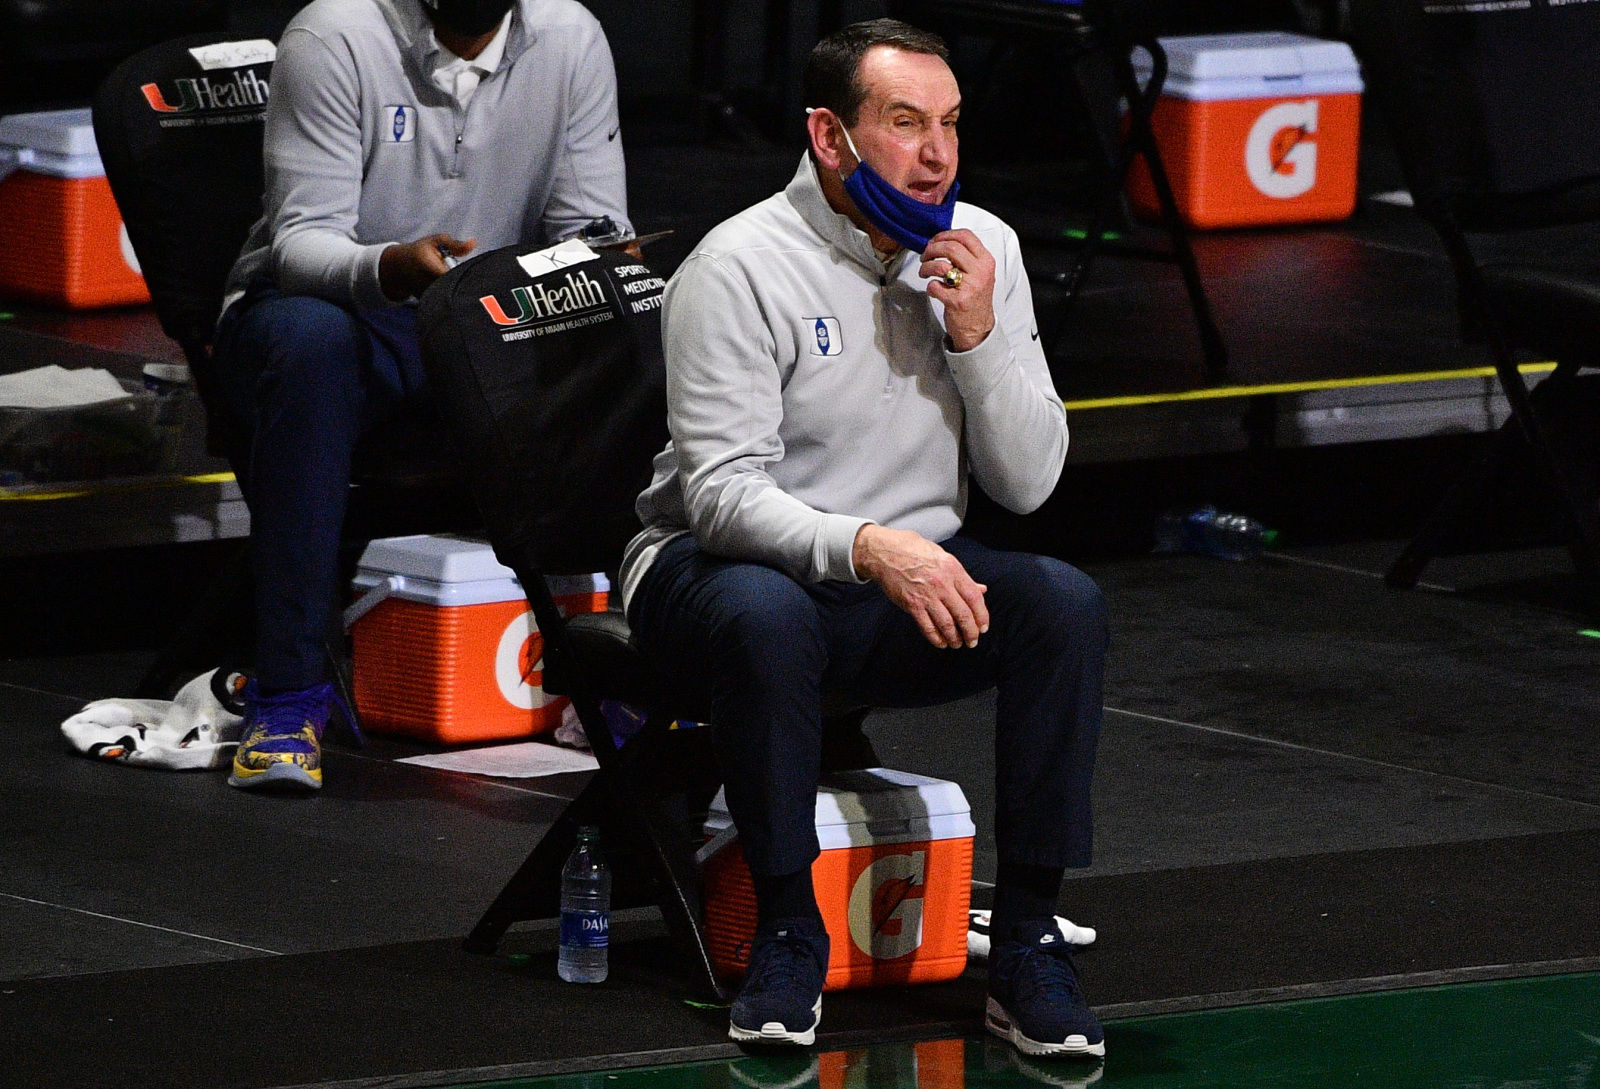 Duke basketball: Blue Devils add to recent overtime woes